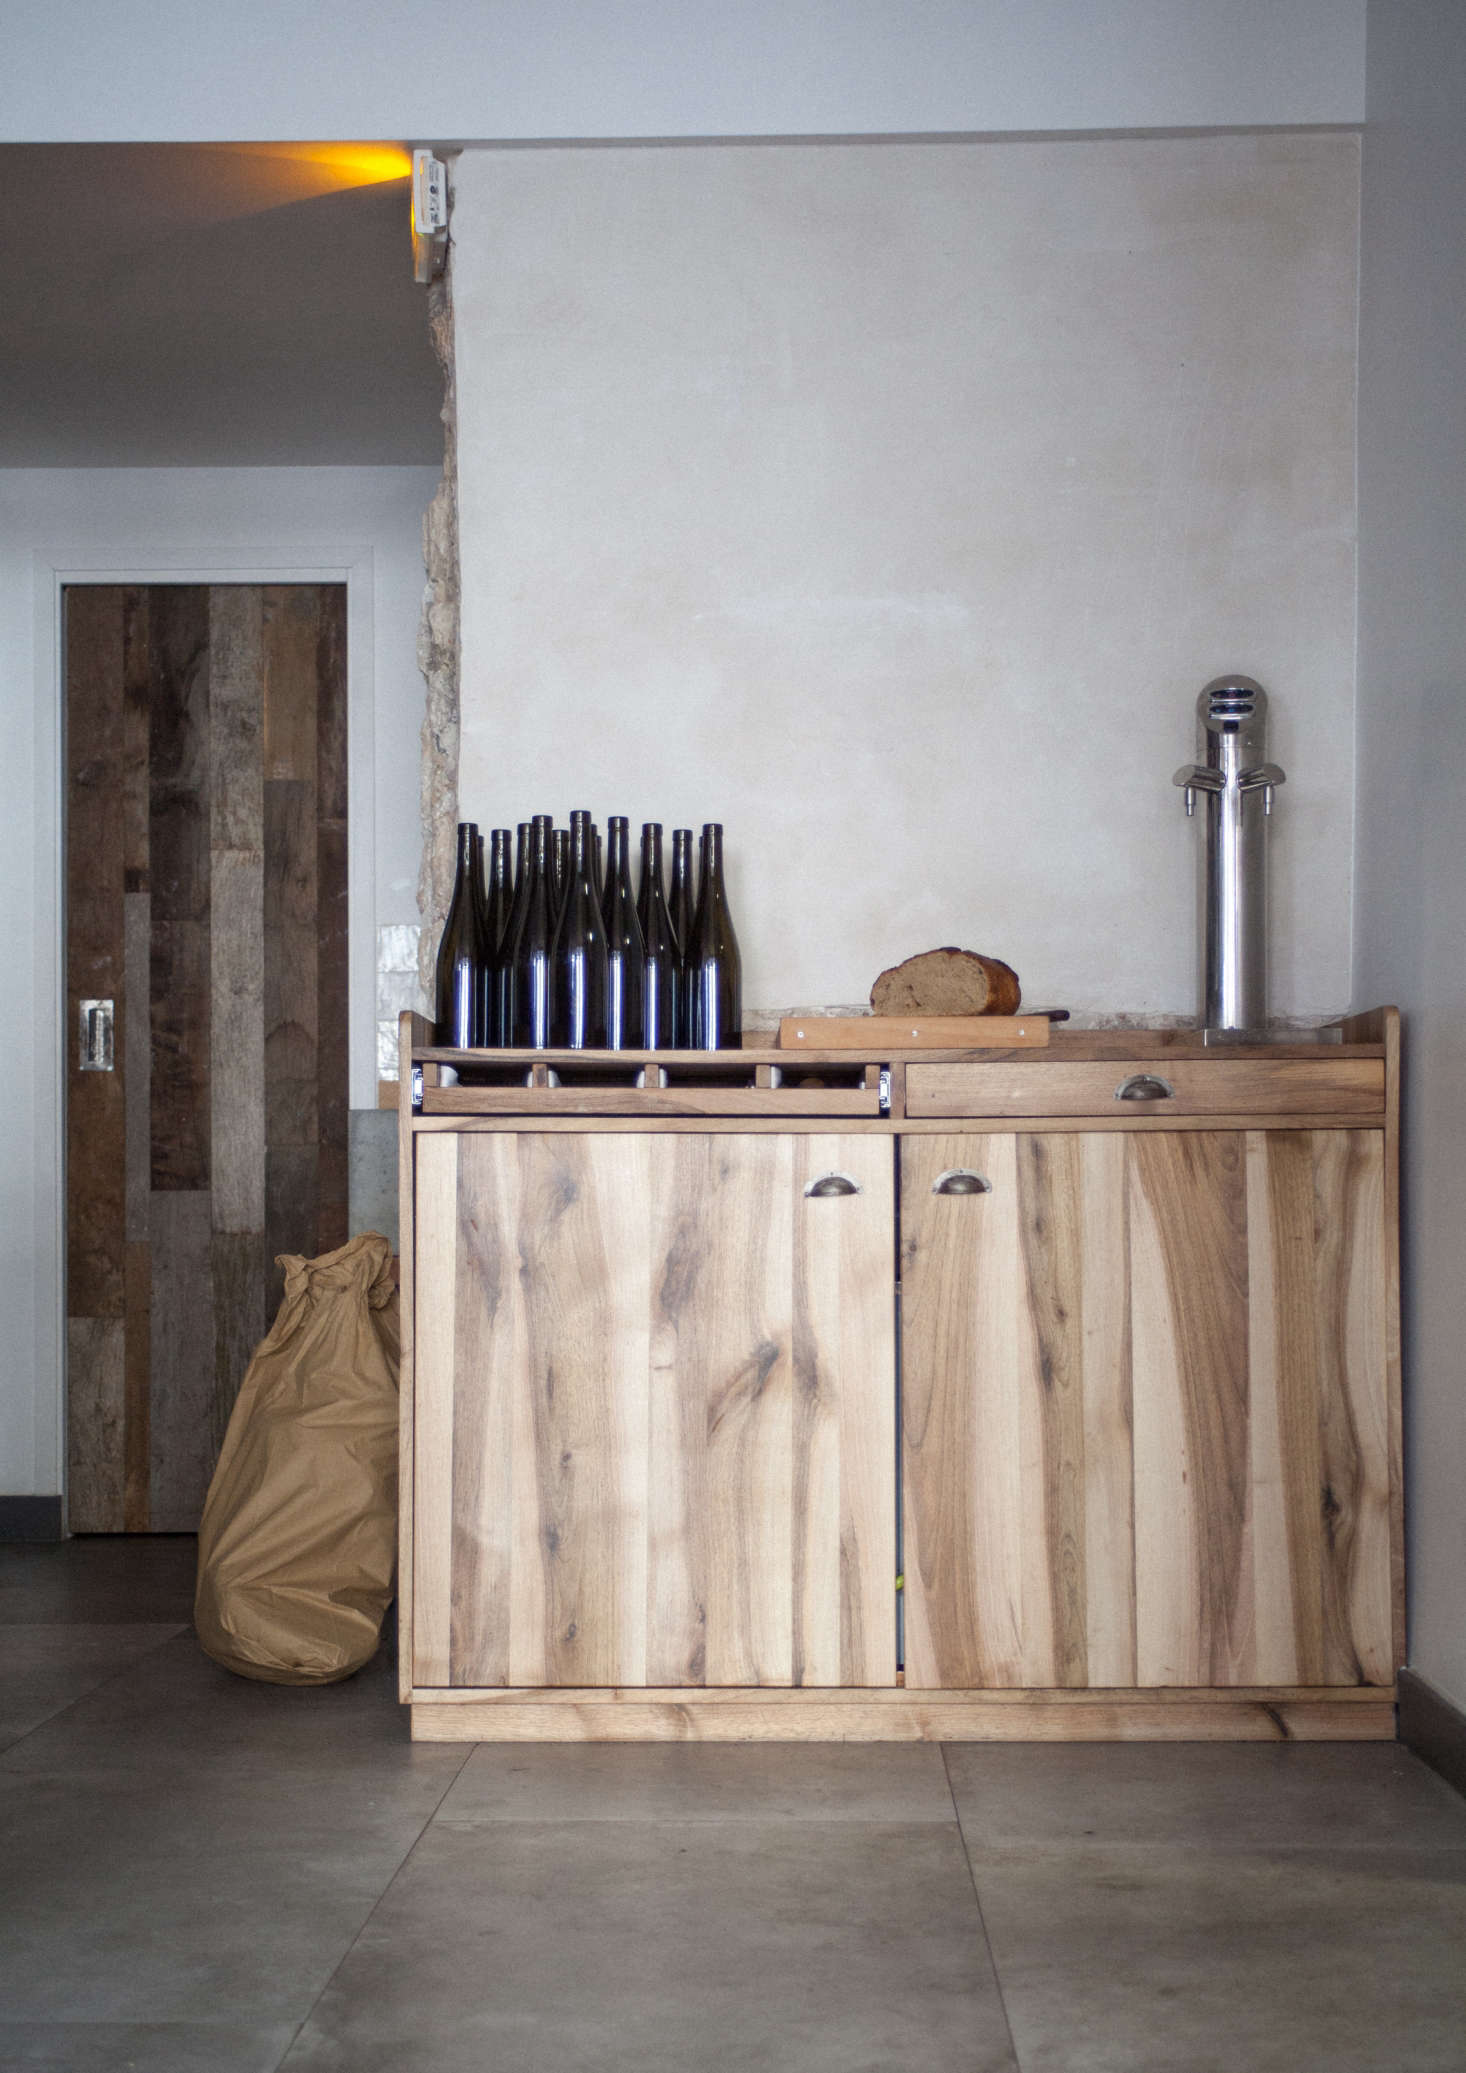 A reclaimed wood door and custom server station.